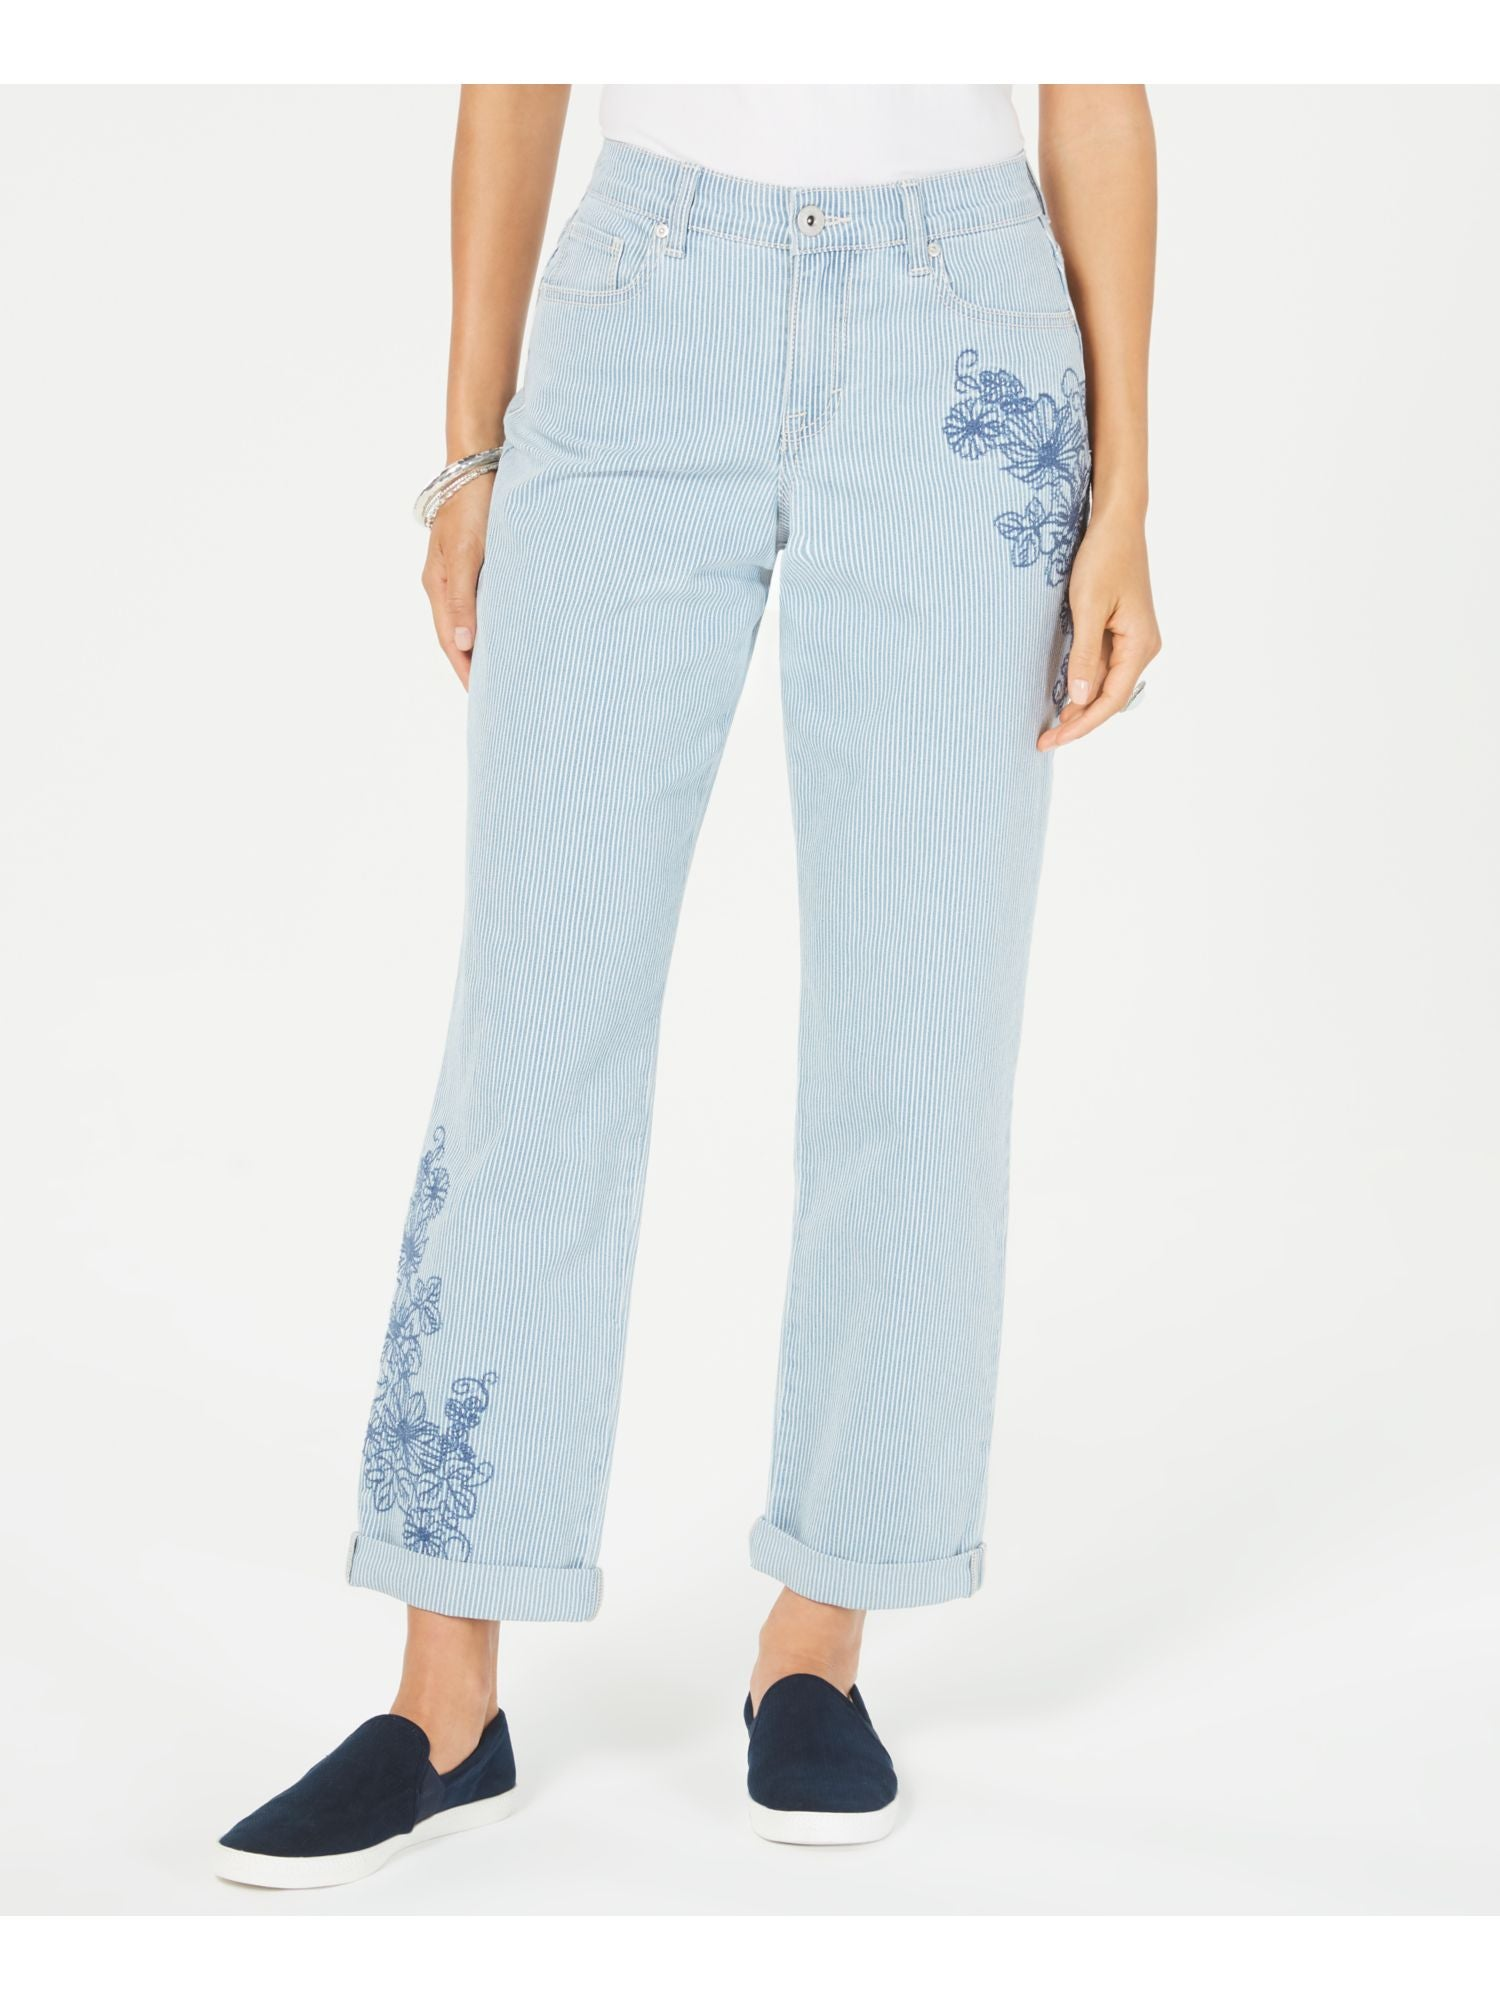 Style & Co Womens Blue Pinstripe Pants